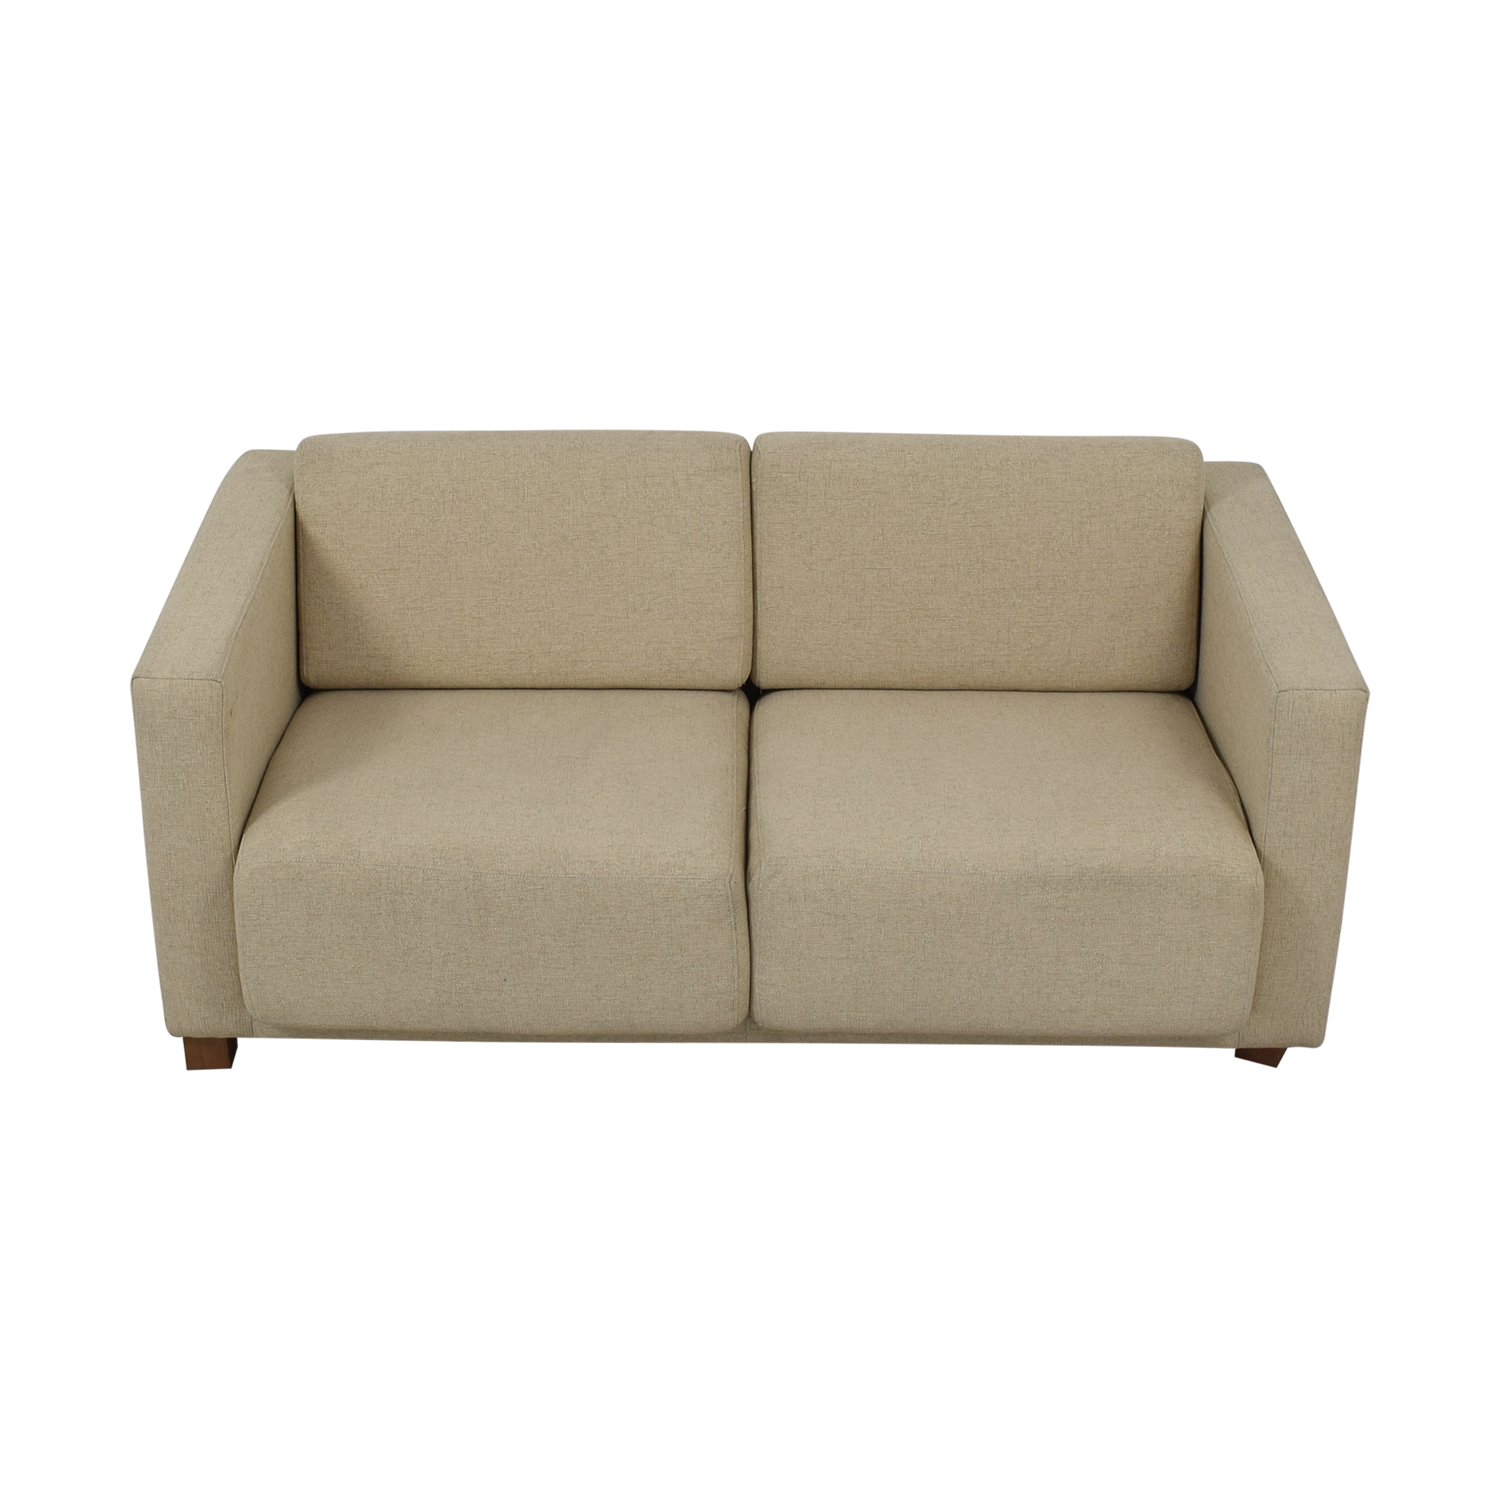 buy Control Brand Sean Dix Standard Two Seater Sofa Control Brand Loveseats